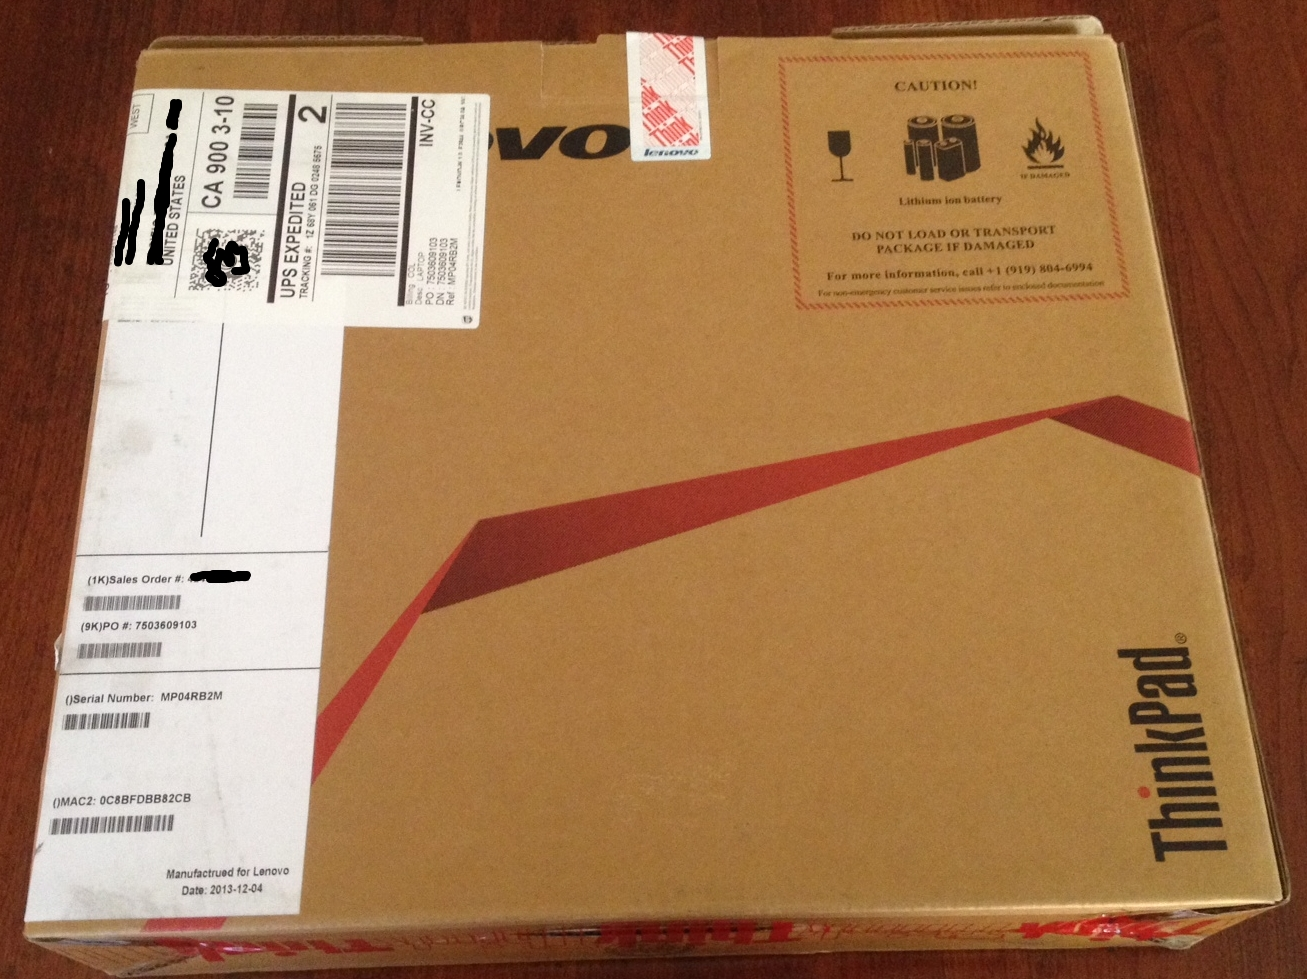 The Lenovo packaging is a very utilitarian affair. Despite traveling all the way from China, there's no double boxing.